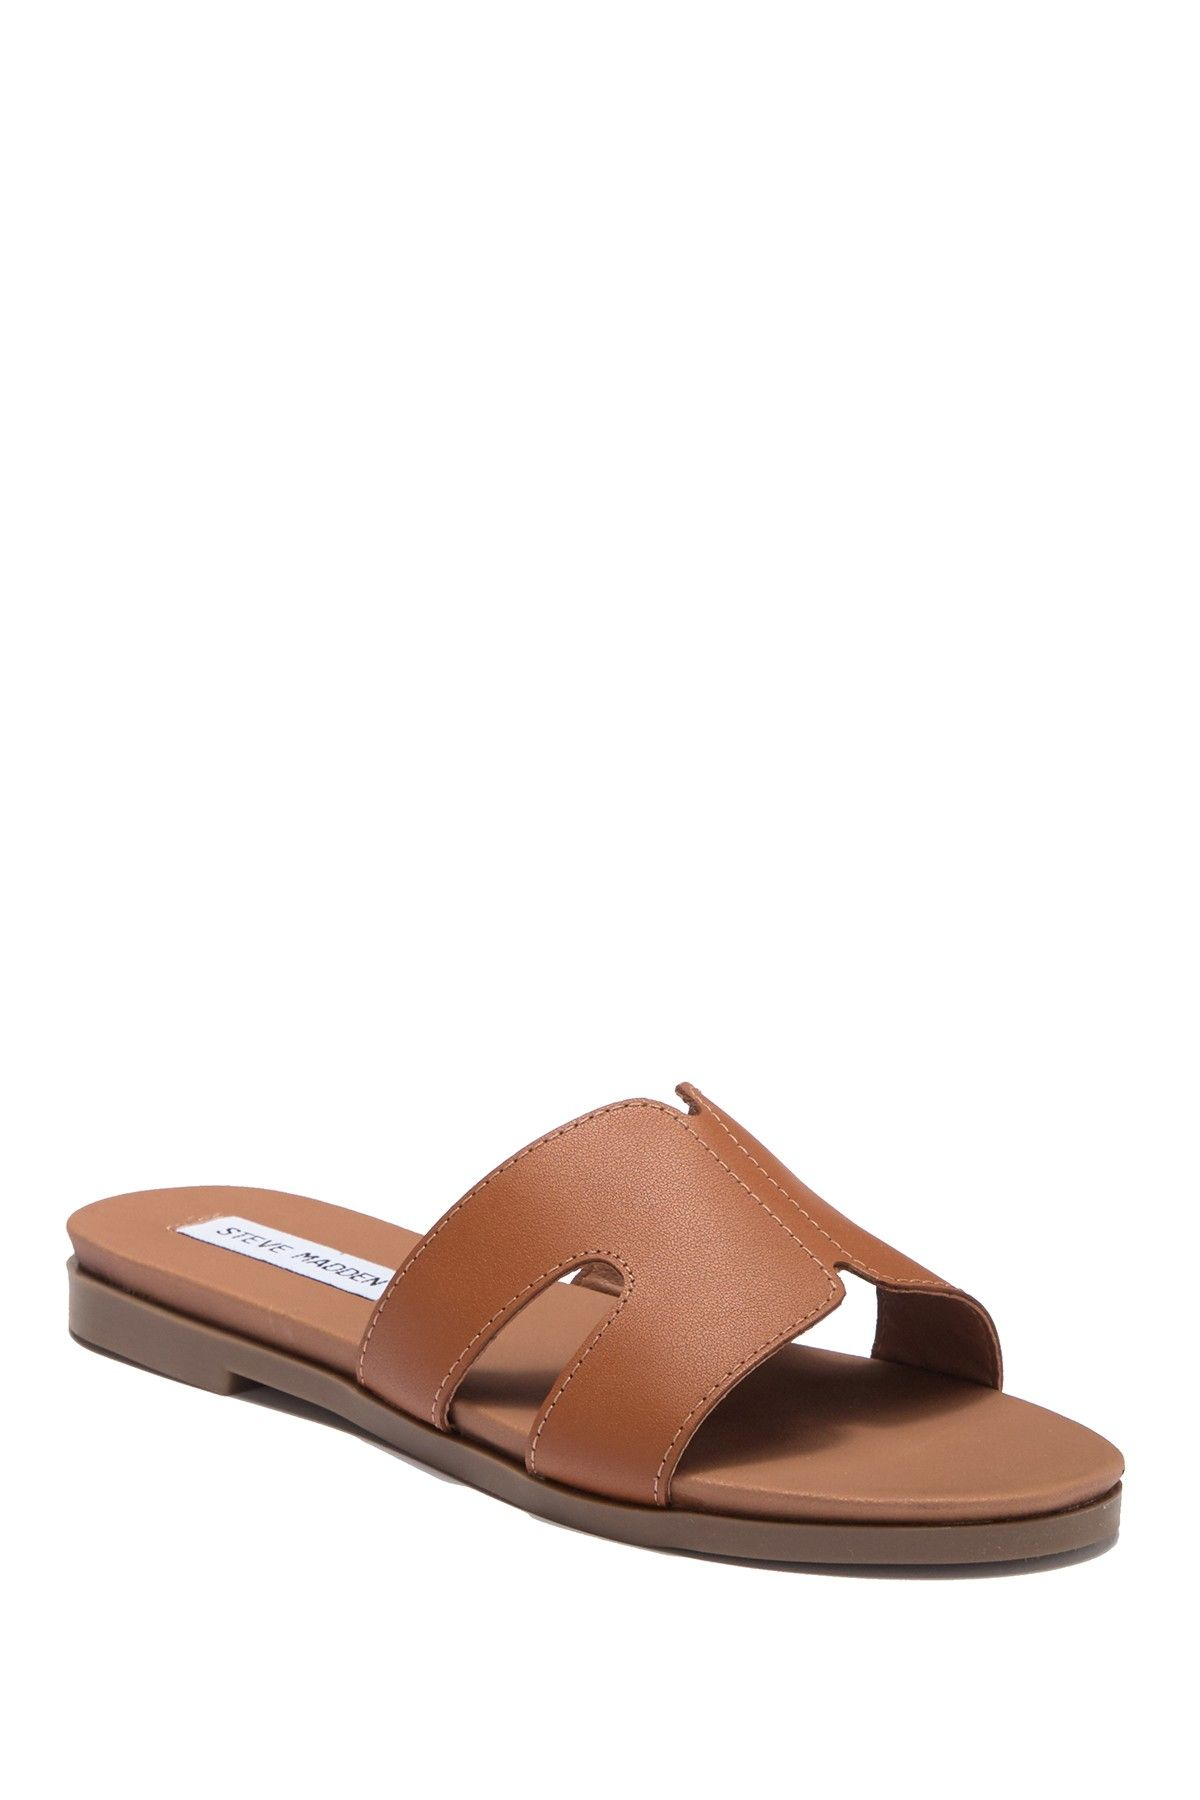 347b3fb05ecc Hoku Leather Slide Sandal in 2019